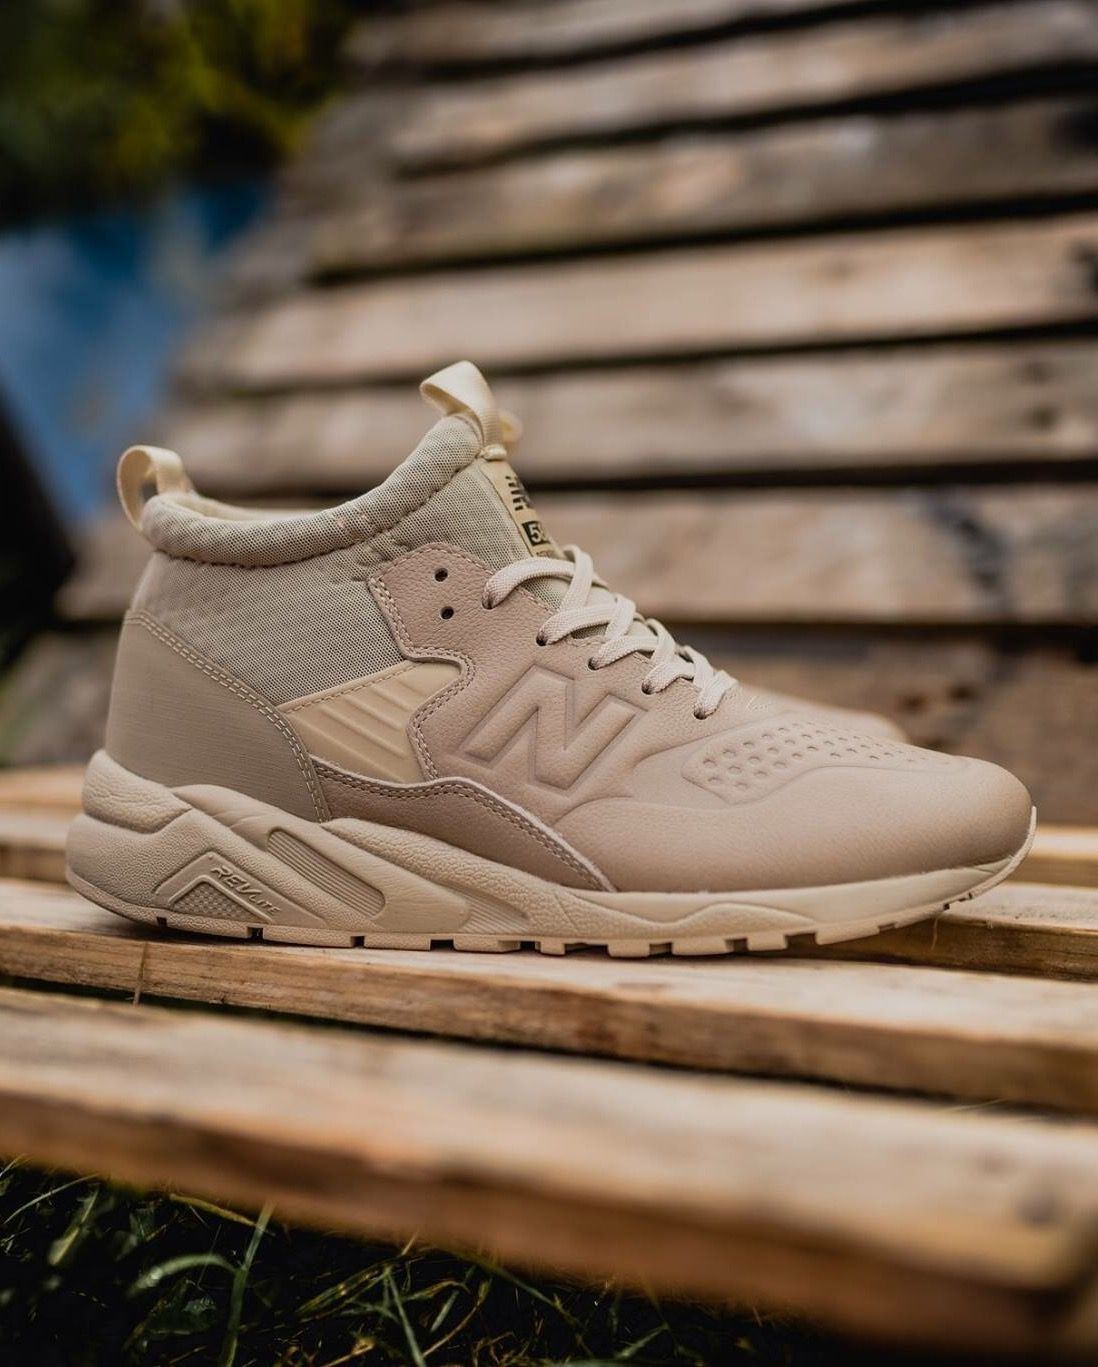 82aa856edc014 New Balance MRH580: Light Tan | Shoe collection in 2019 | Shoes, Tan ...